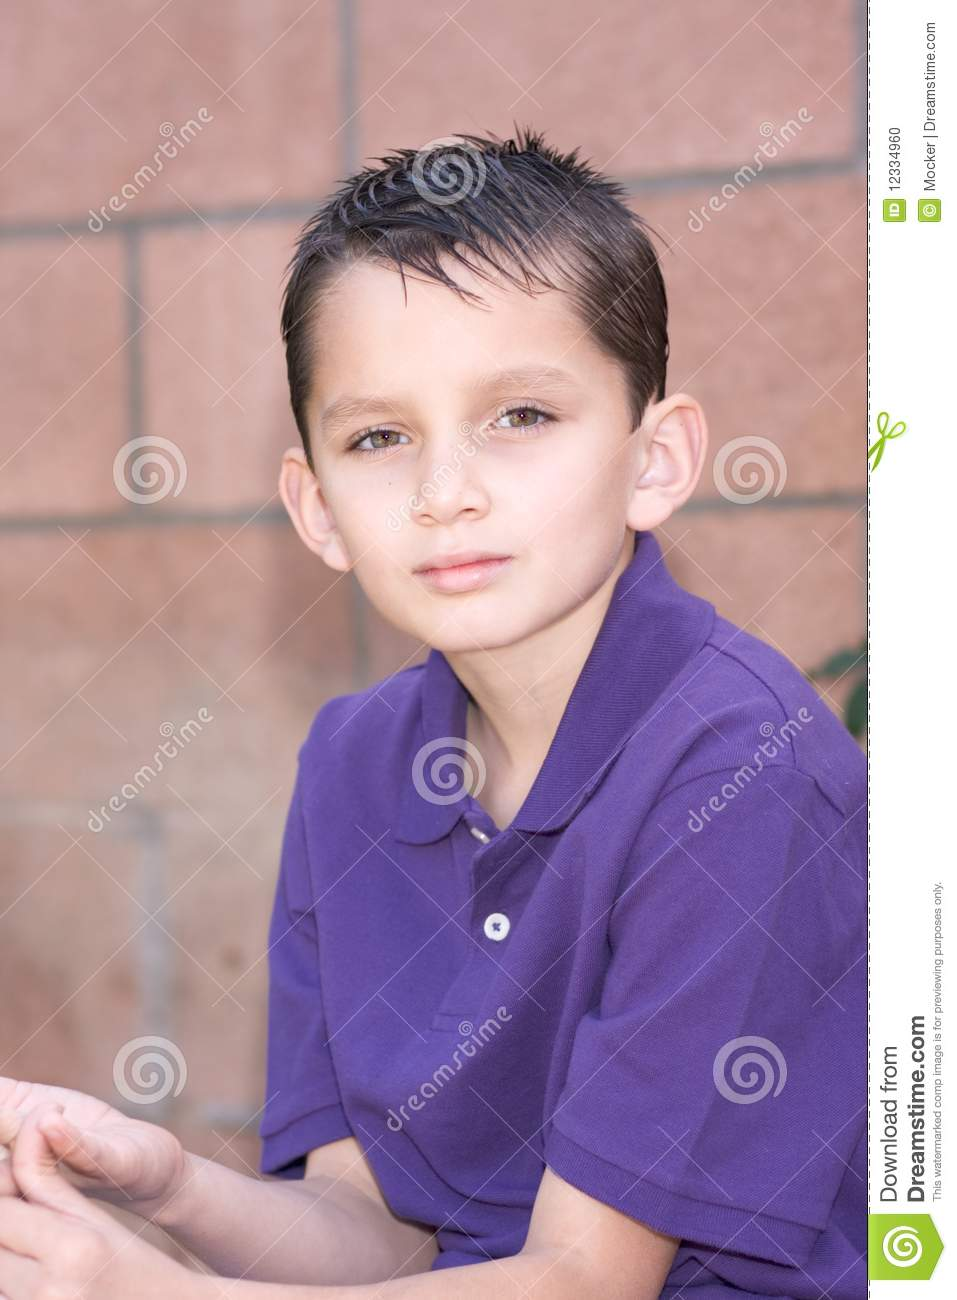 Portrait Young Biracial Boy With Short Hair Stock Photo